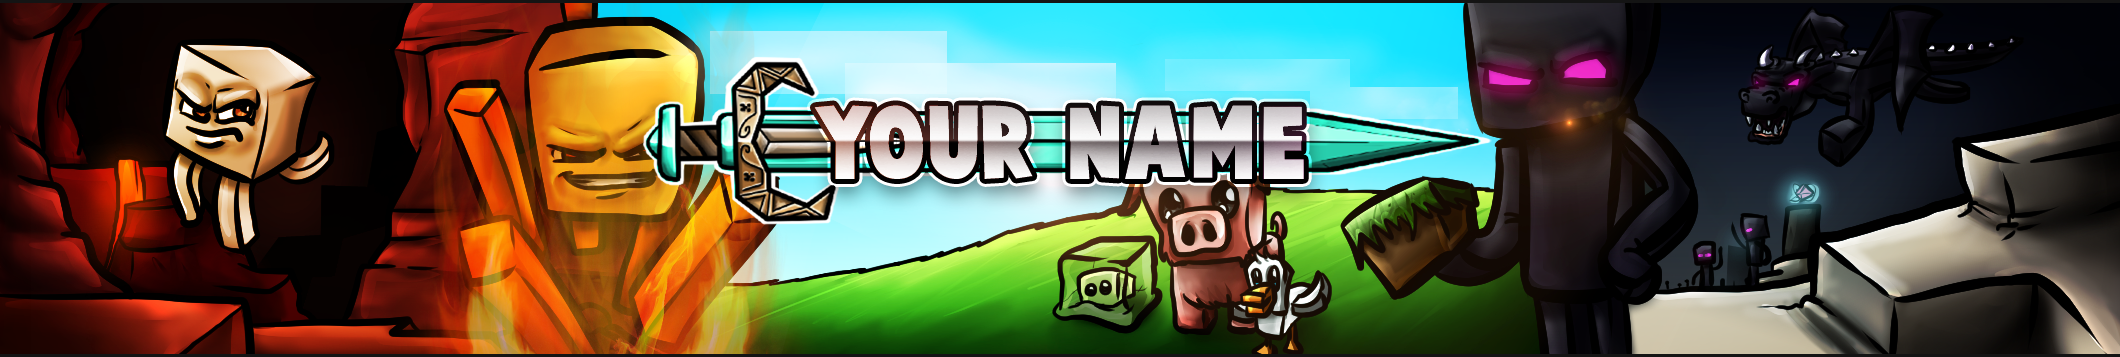 Free YouTube Banners!